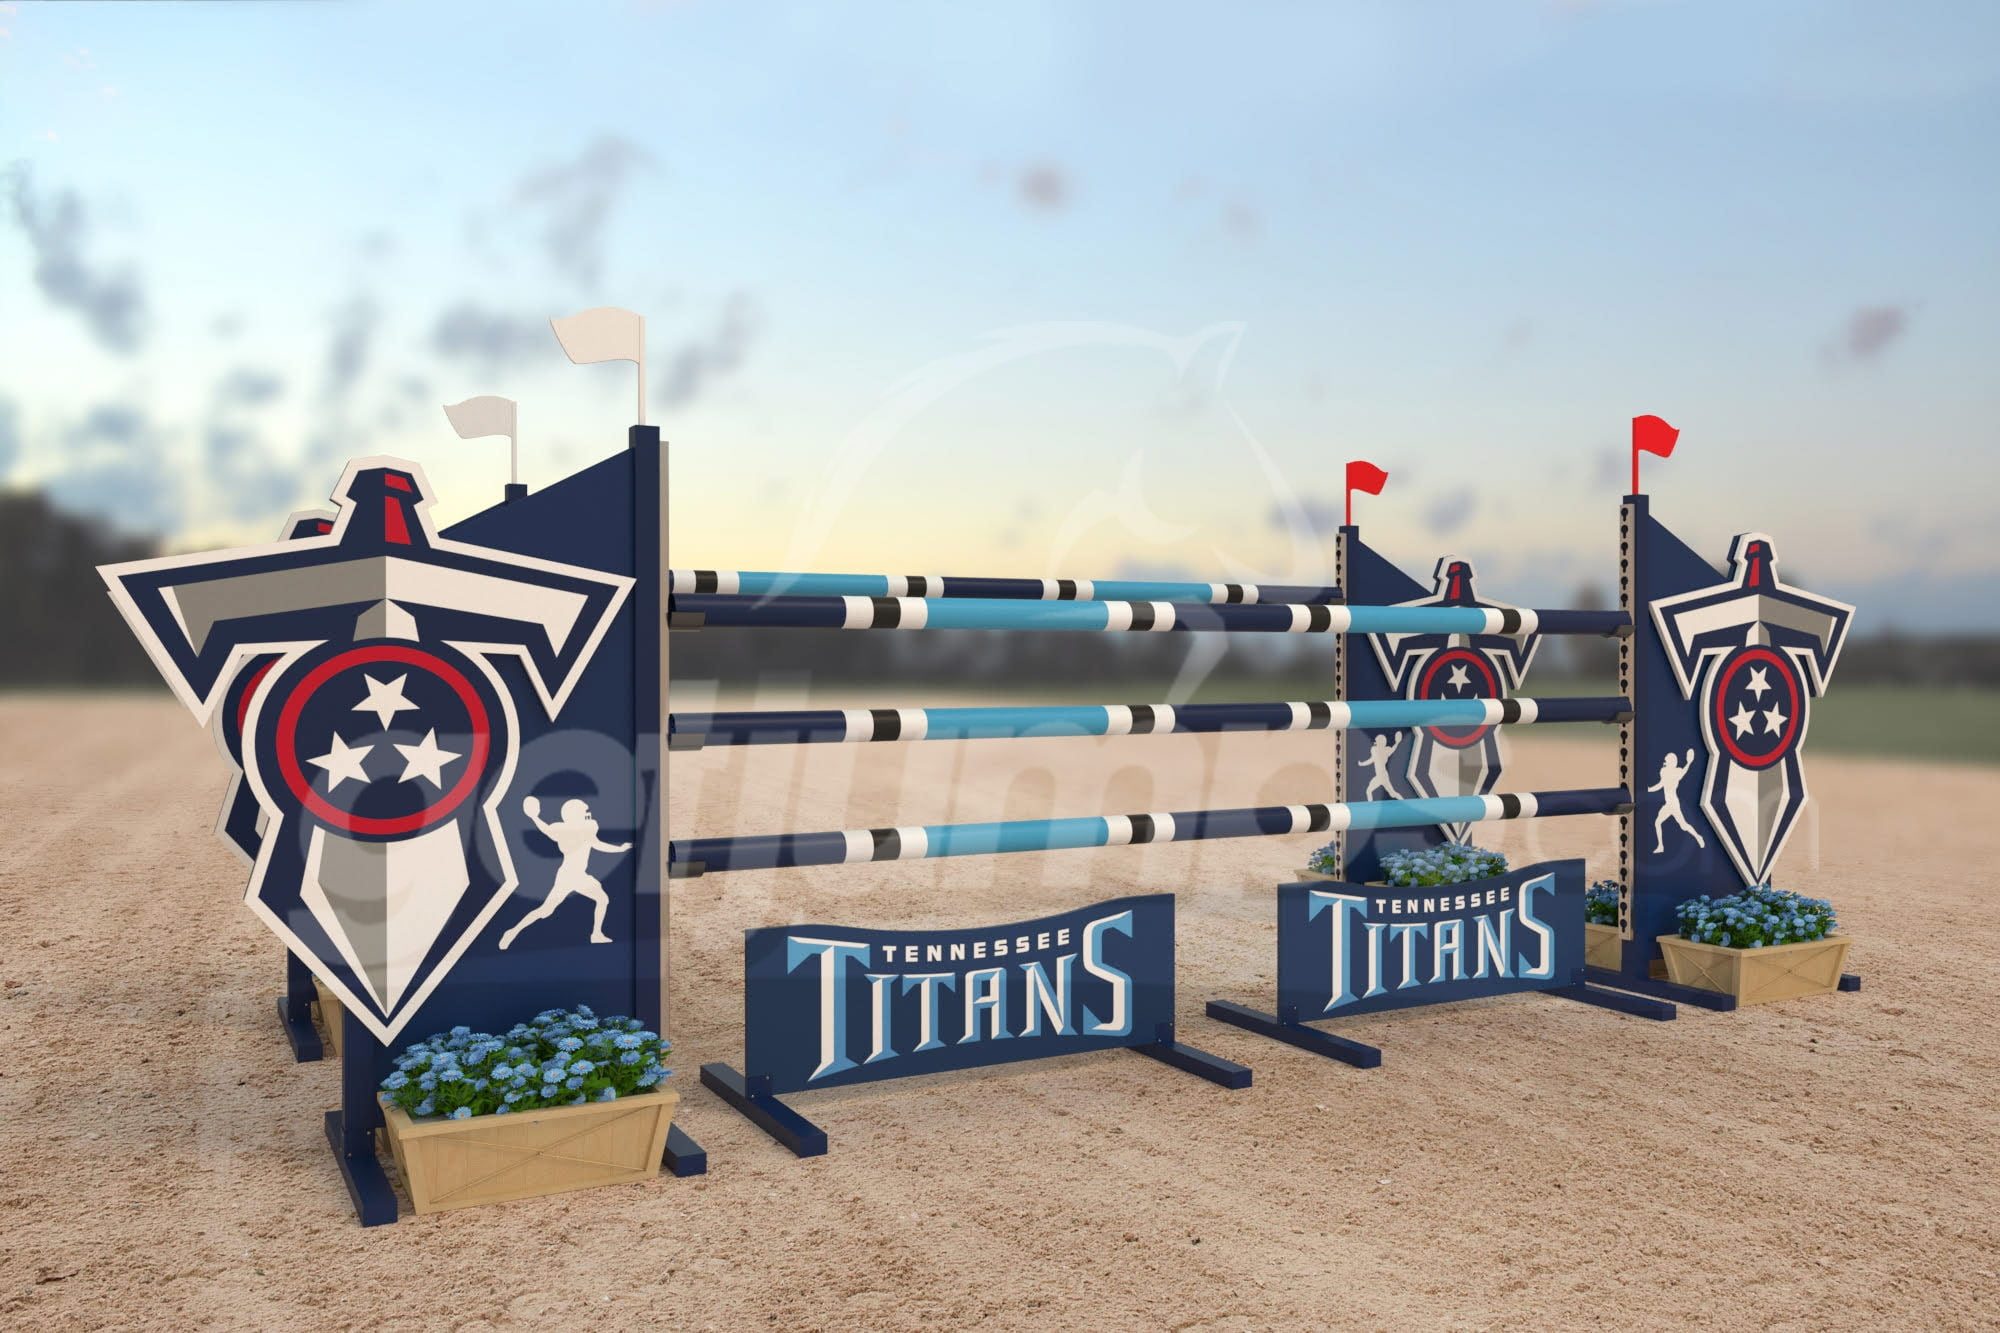 Titans themed dark blue aluminum horse jump